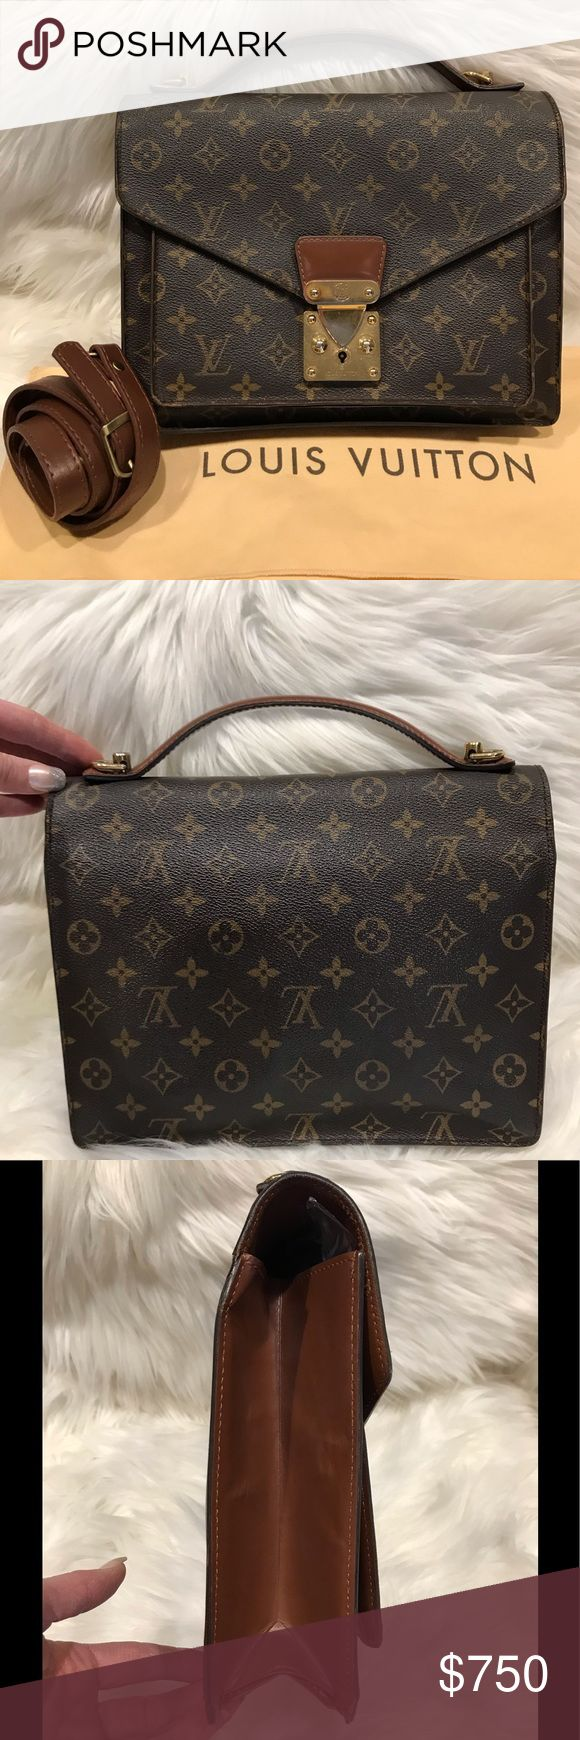 Authentic Louis Vuitton Monceau Handbag #7.8F Used – shows signs of use & wear but overall still in excellent condition. Exterior canvas & exterior le…